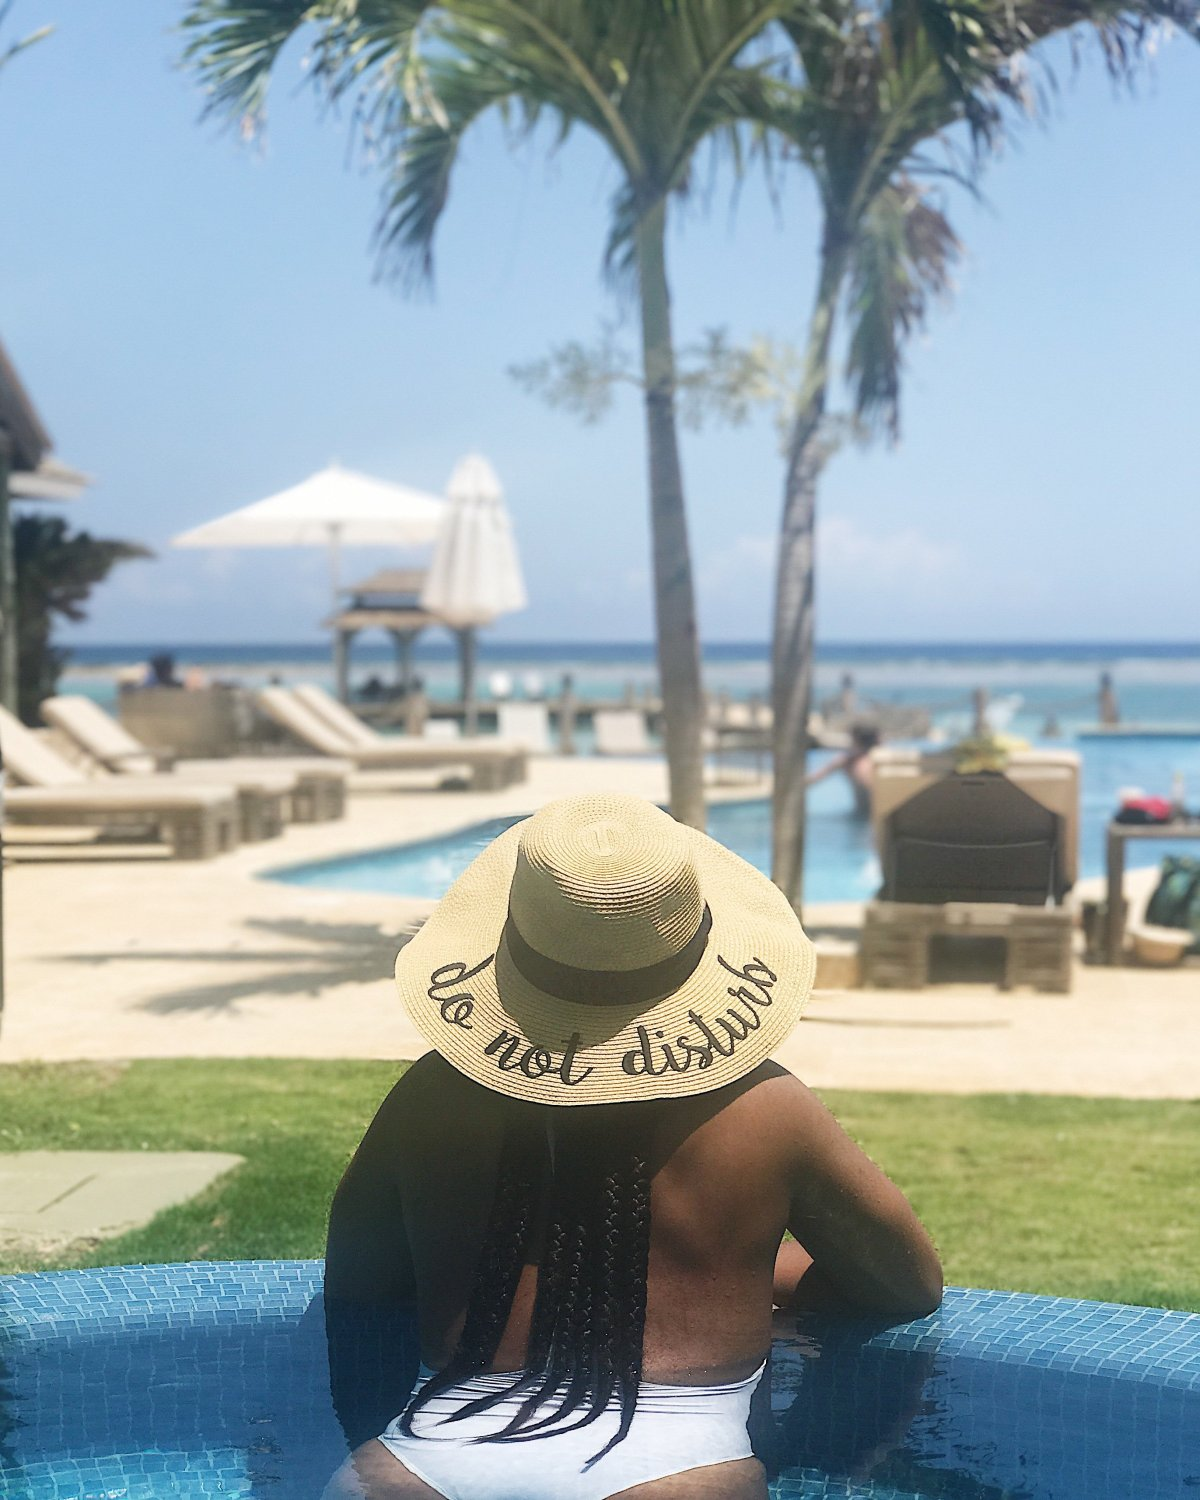 Our Honeymoon Stay at Zoëtry Montego Bay Jamaica